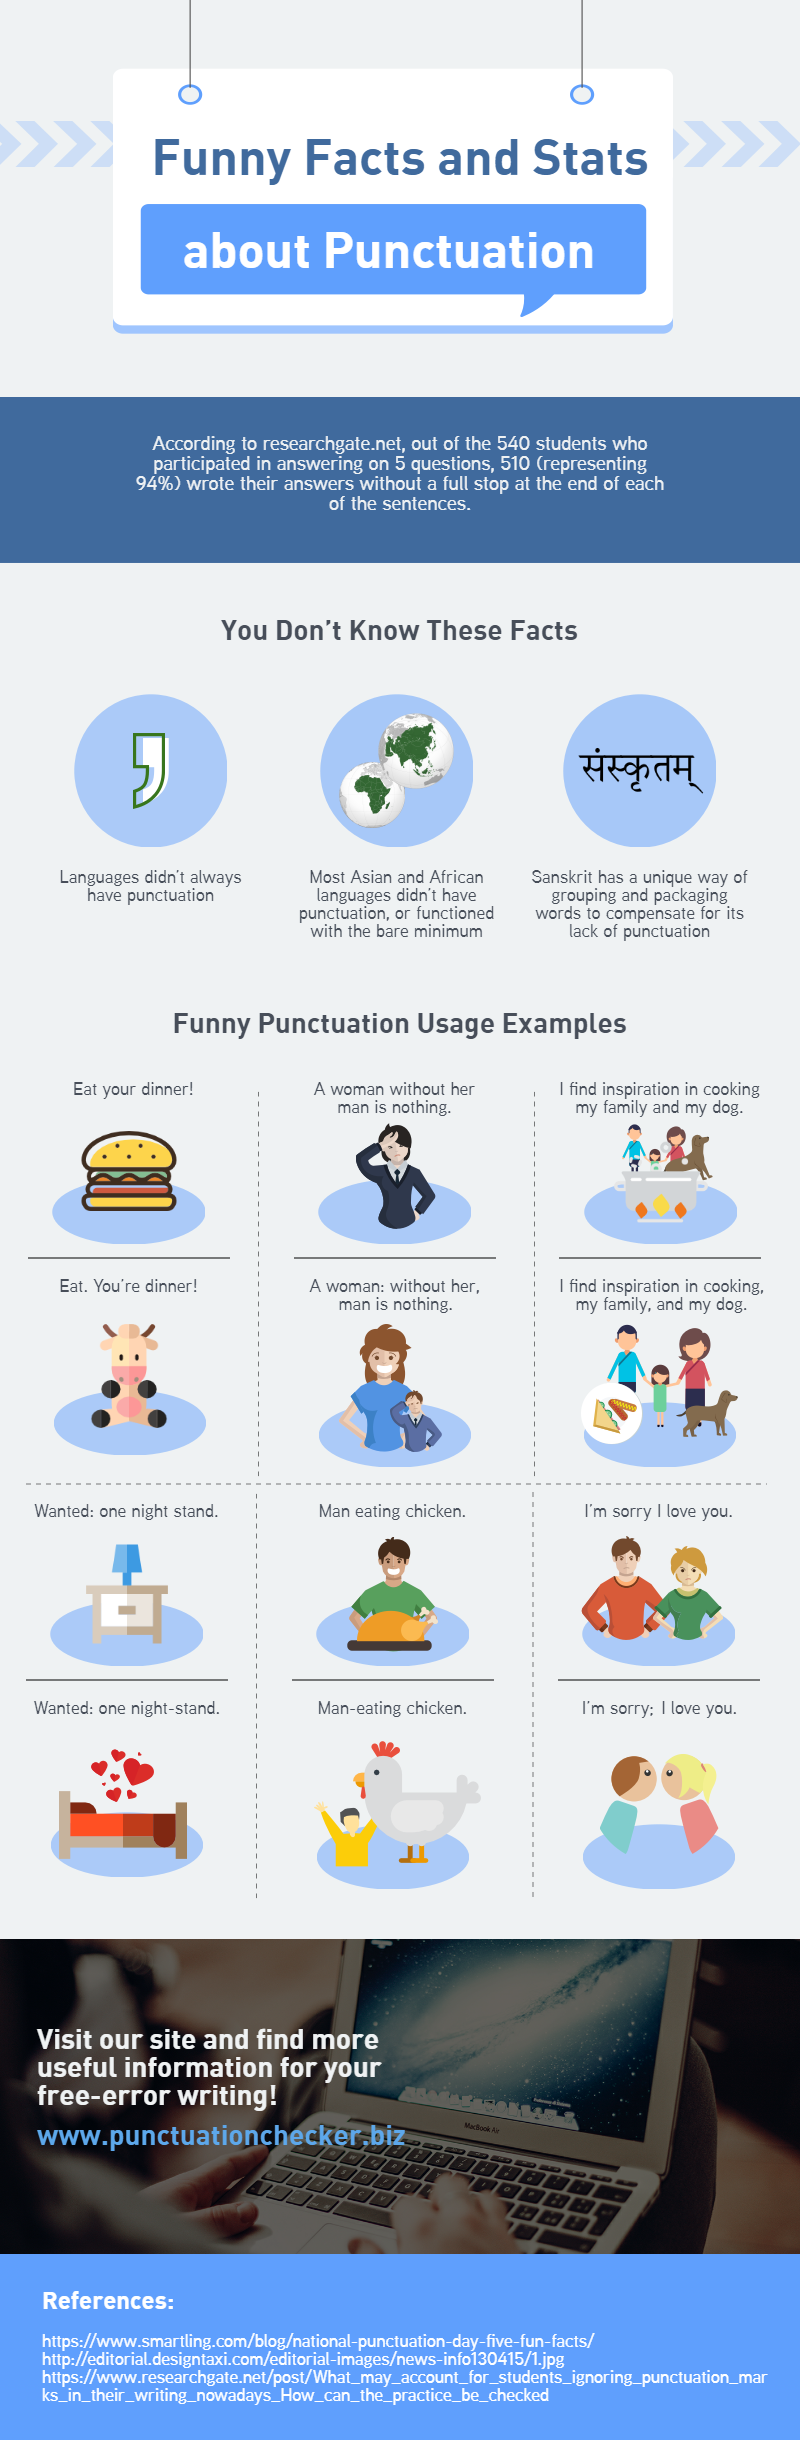 facts and stats about punctuation